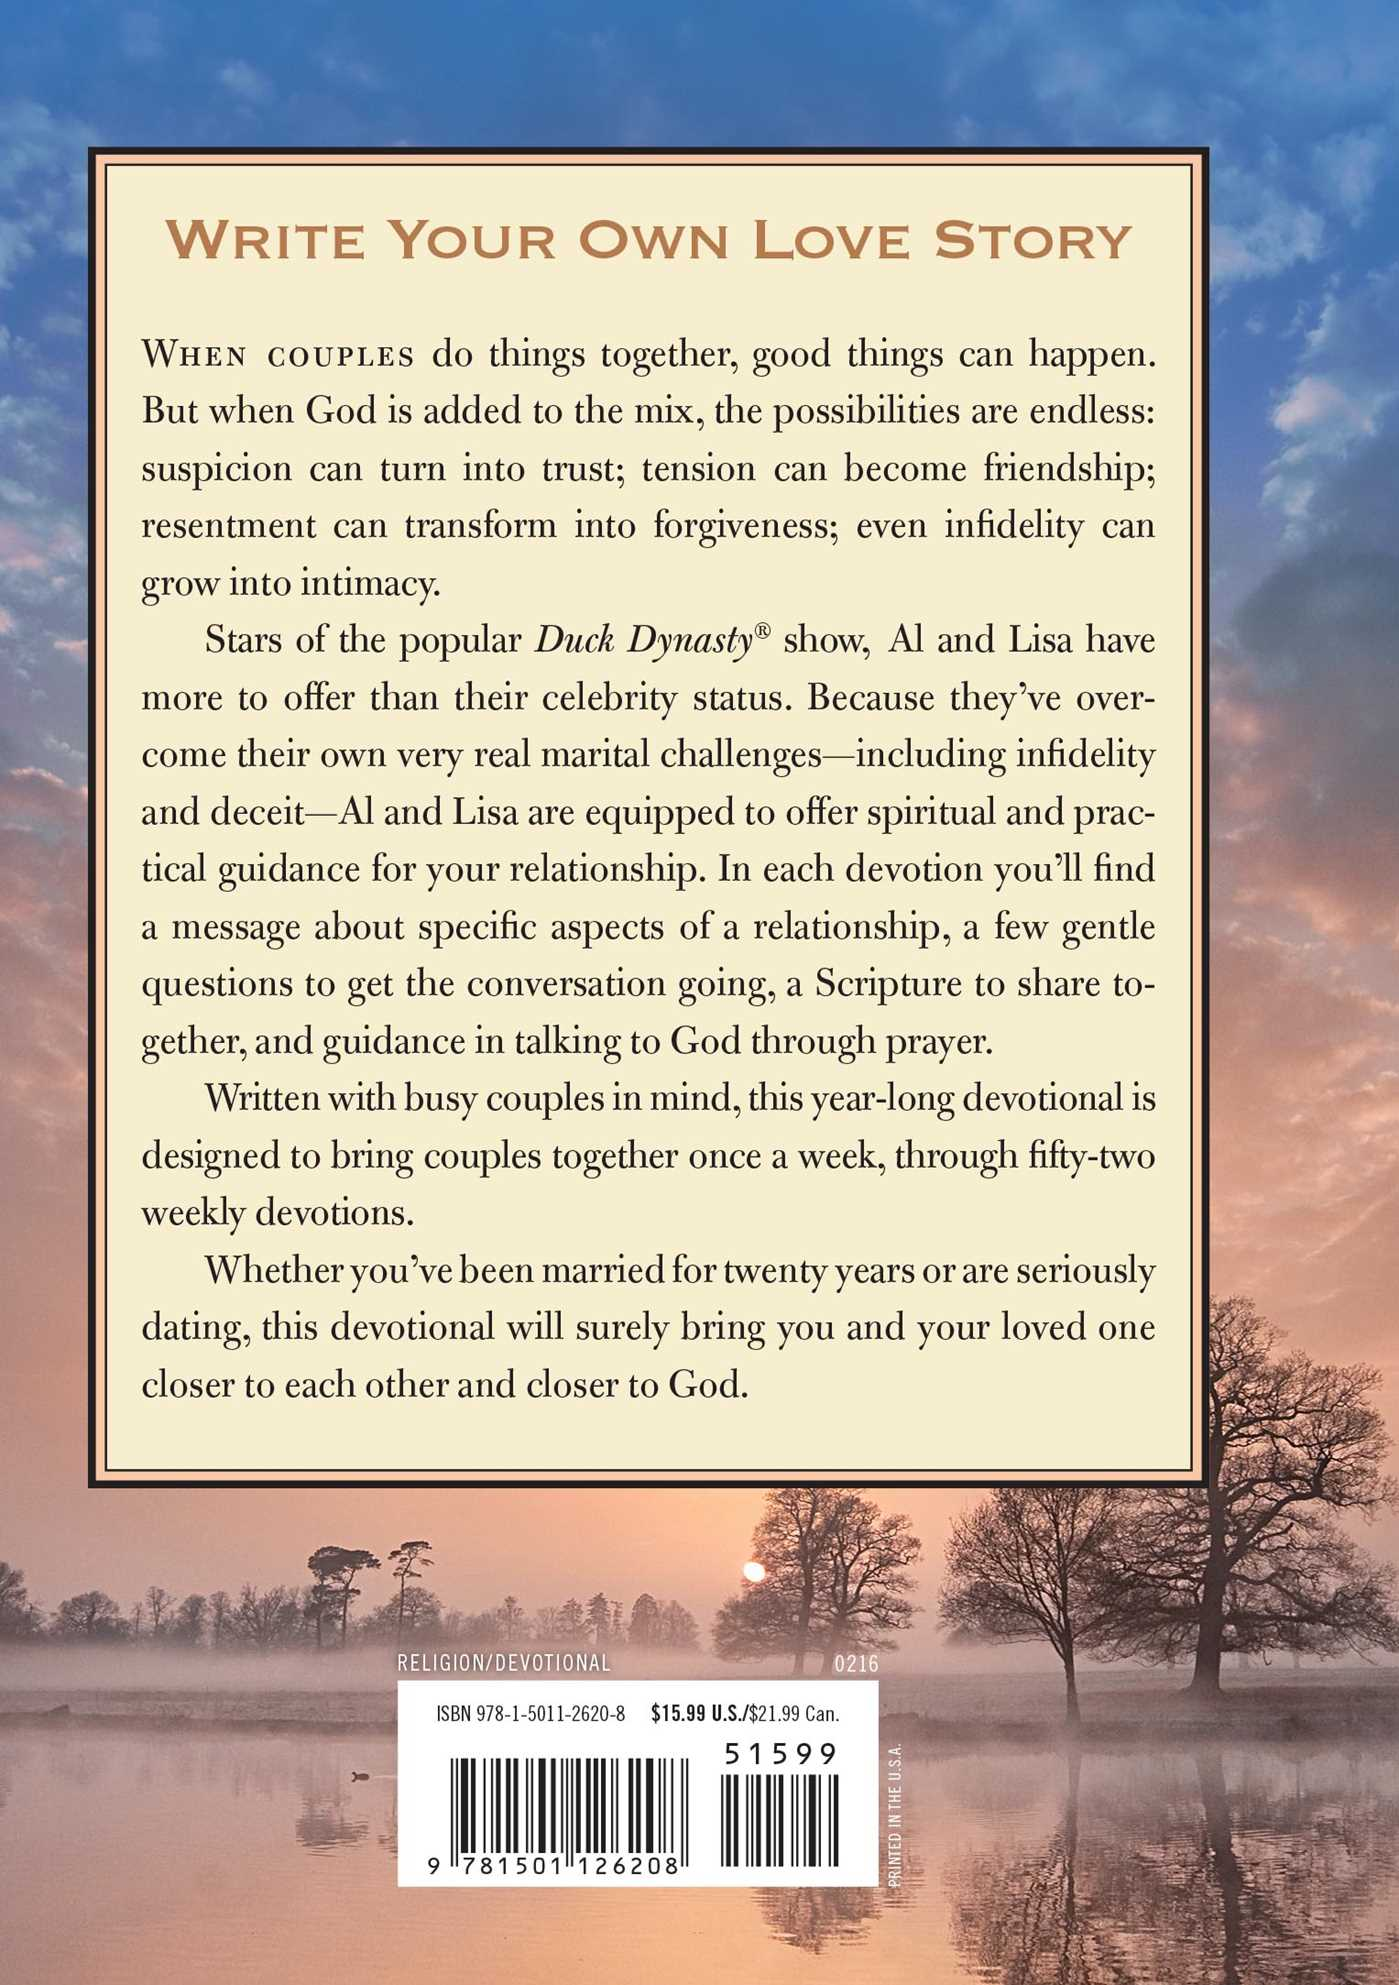 Good devotions for couples